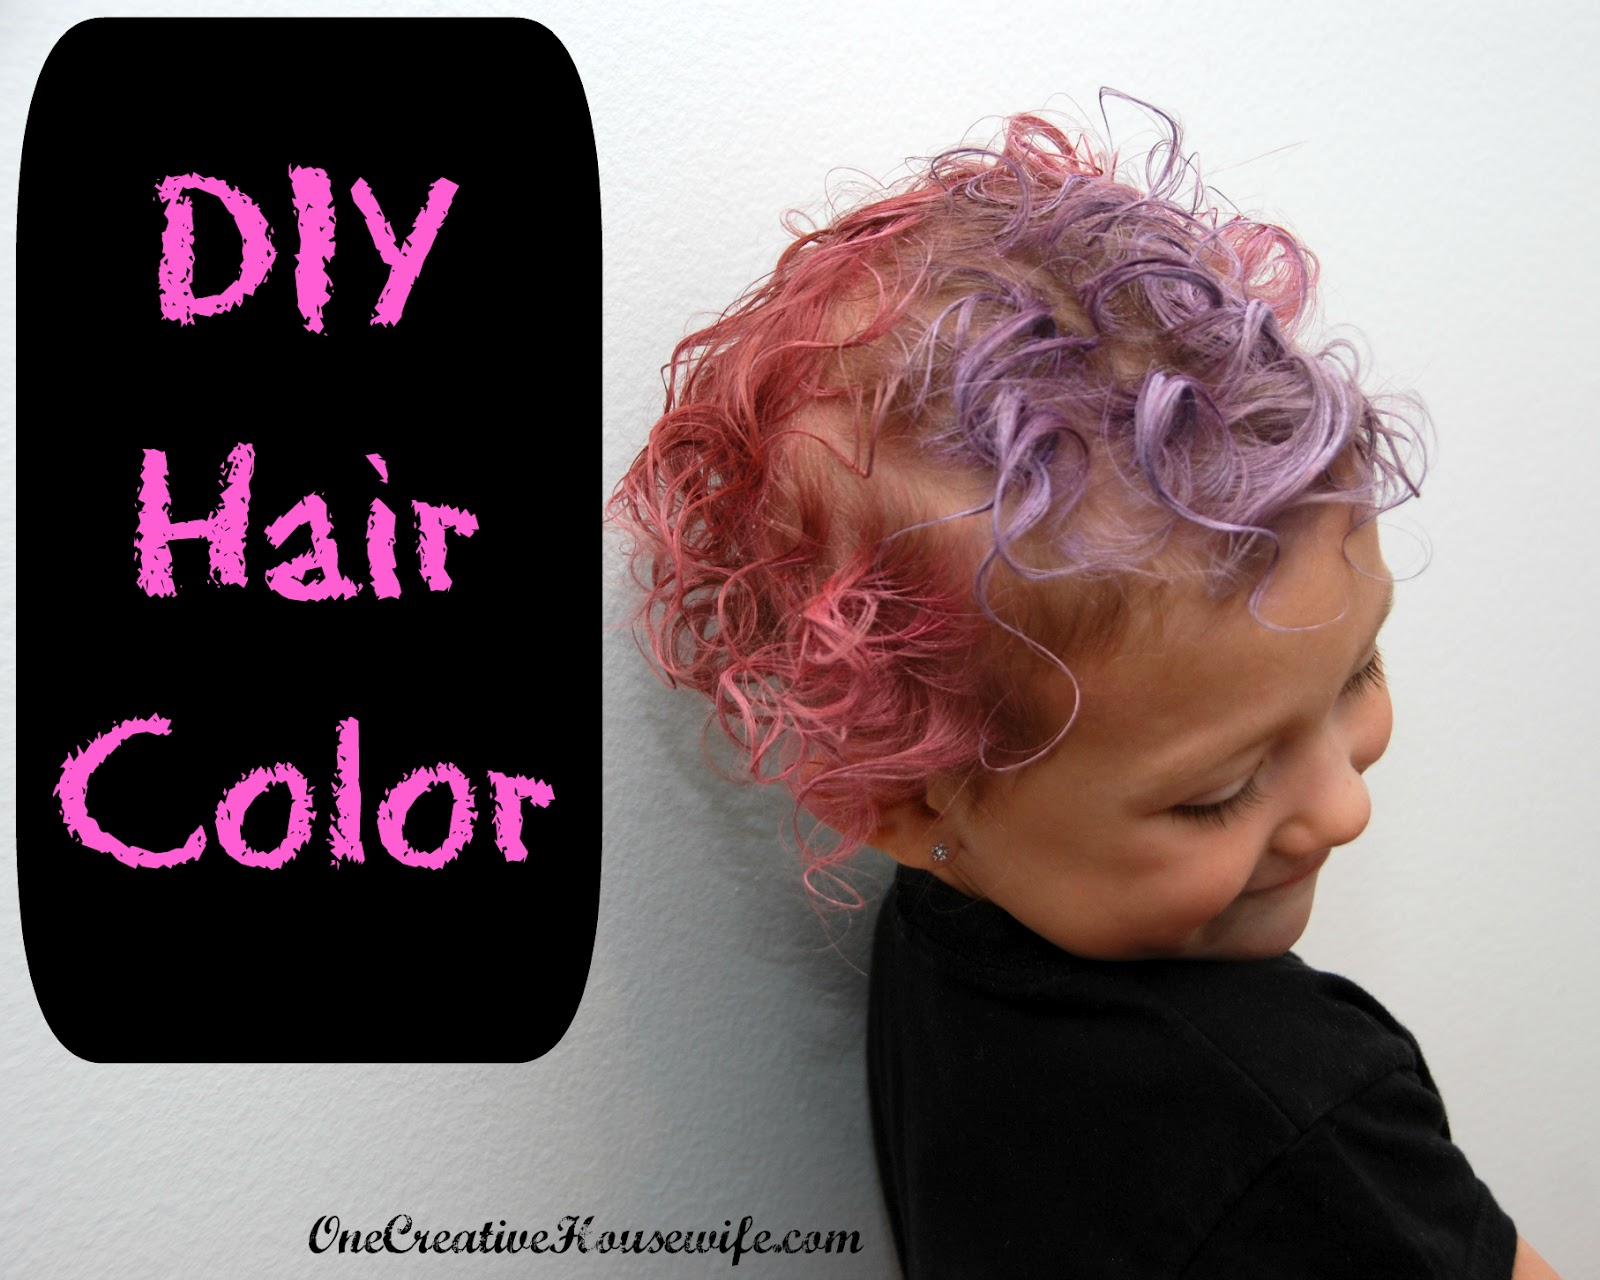 One Creative Housewife Diy Hair Color